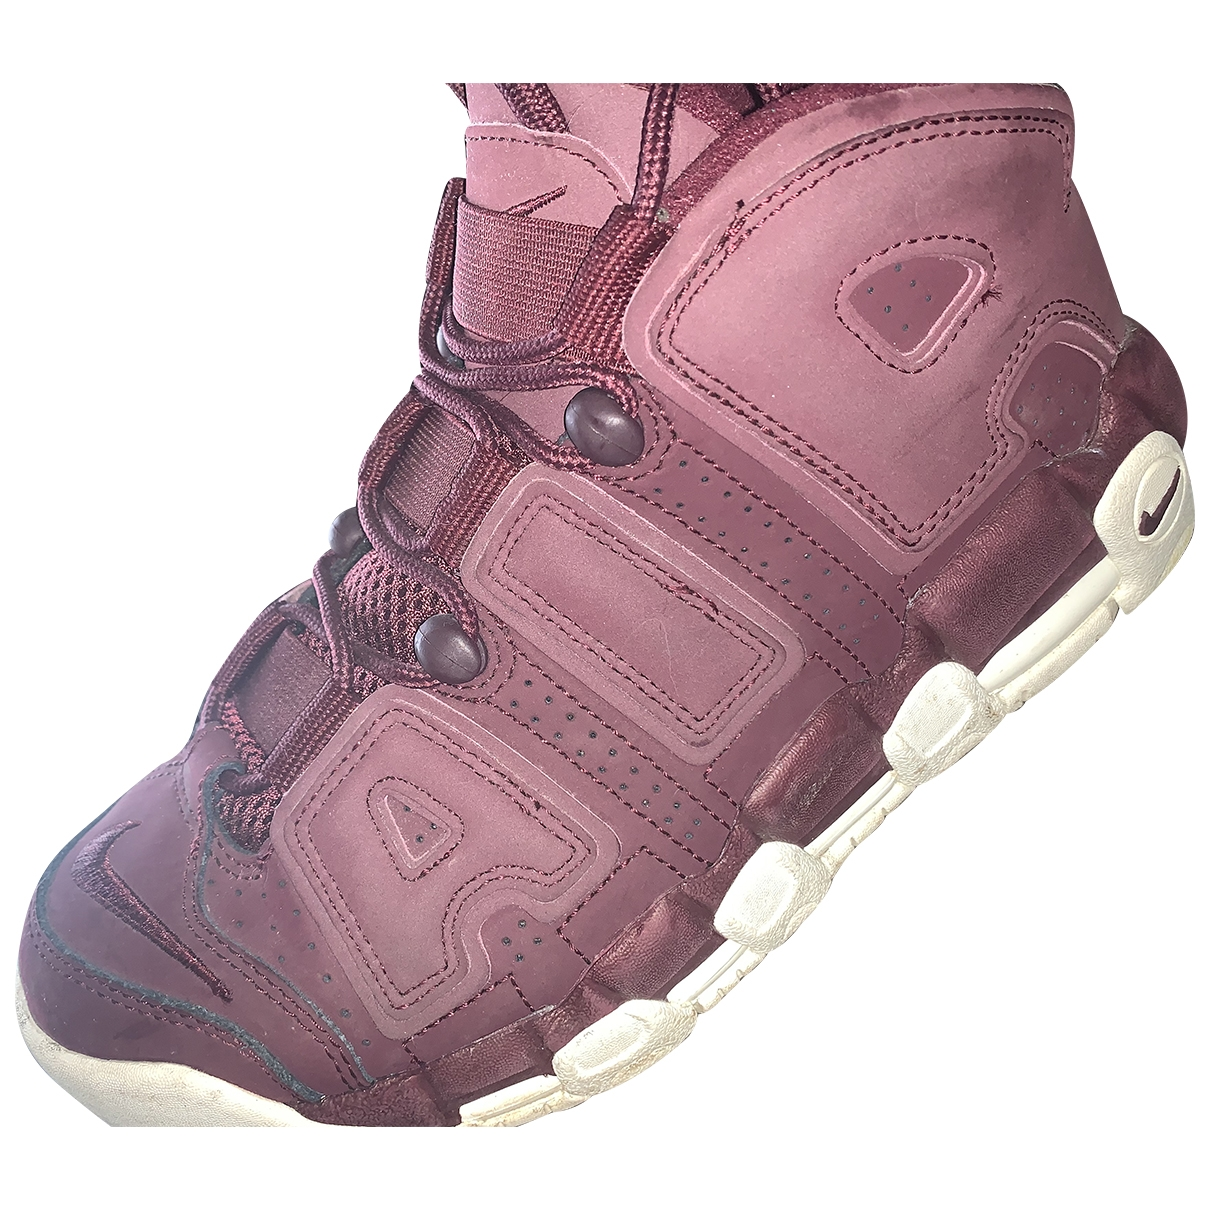 Nike Air More Uptempo Burgundy Leather Trainers for Women 38.5 EU